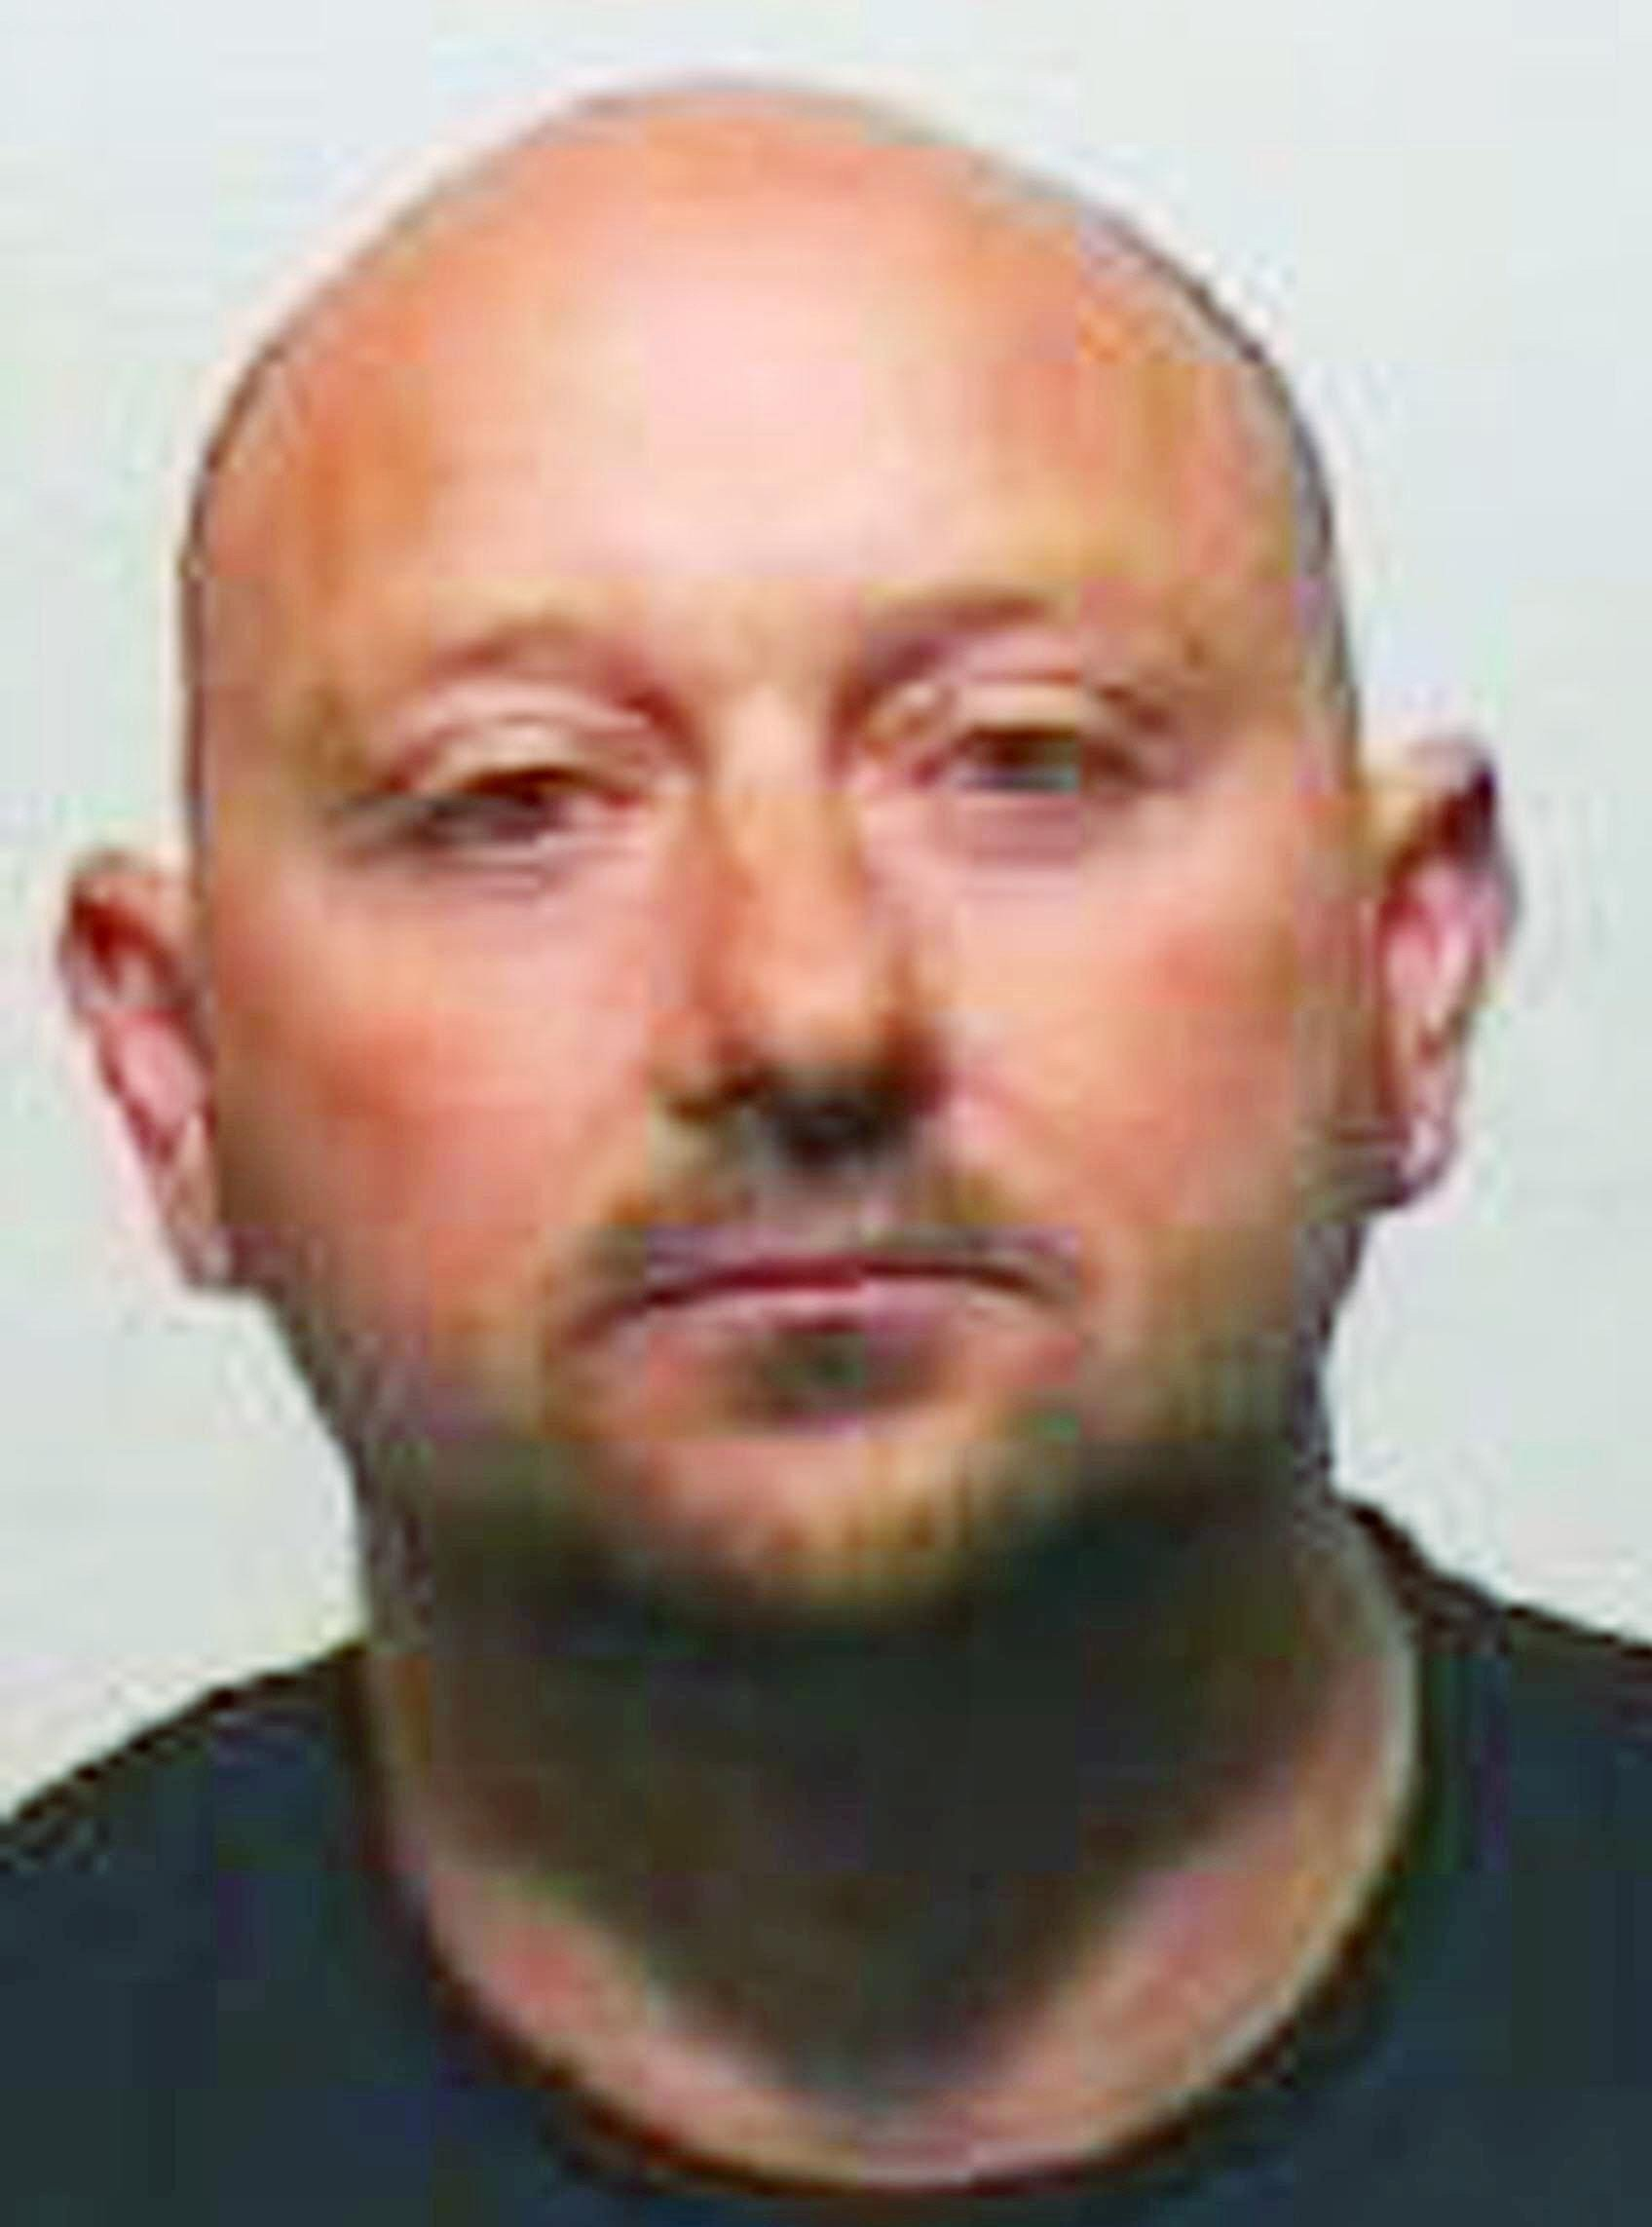 "BEST QUALITY AVAILABLE. Undated handout file photo issued by Northumbria Police of Stephen Mitchell. Calls are growing for a review into the ""disturbing and incomprehensible"" decision to release the former police officer who was jailed for life for raping and sexually assaulting vulnerable women. PRESS ASSOCIATION Photo. Issue date: Monday August 6, 2018. Mitchell was ordered to serve two life sentences and warned he might never be freed from prison by a judge at Newcastle Crown Court in January 2011. See PA story POLITICS Mitchell. Photo credit should read: Nothumbria Police/PA Wire NOTE TO EDITORS: This handout photo may only be used in for editorial reporting purposes for the contemporaneous illustration of events, things or the people in the image or facts mentioned in the caption. Reuse of the picture may require further permission from the copyright holder."